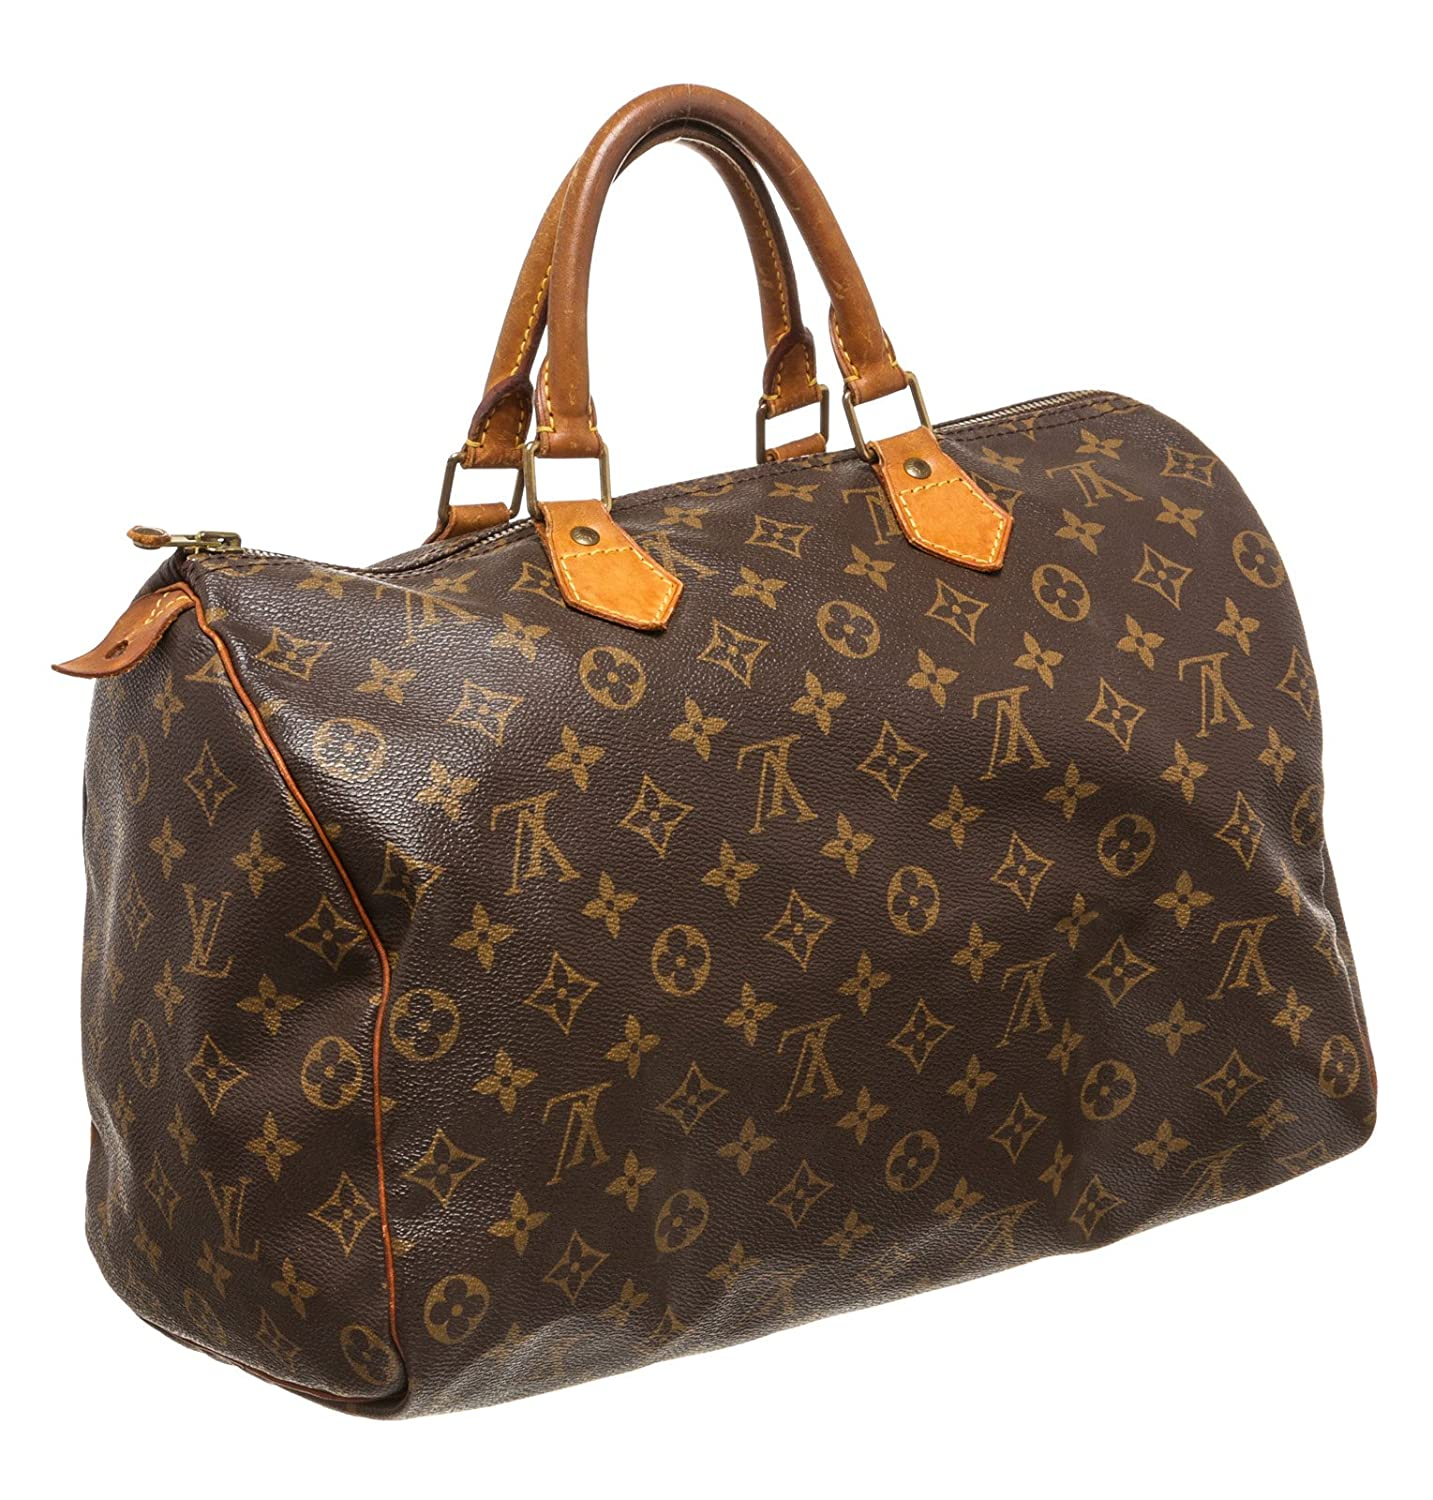 Louis Vuitton - Bolso estilo cartera para mujer marrón marrón: Amazon.es: Equipaje